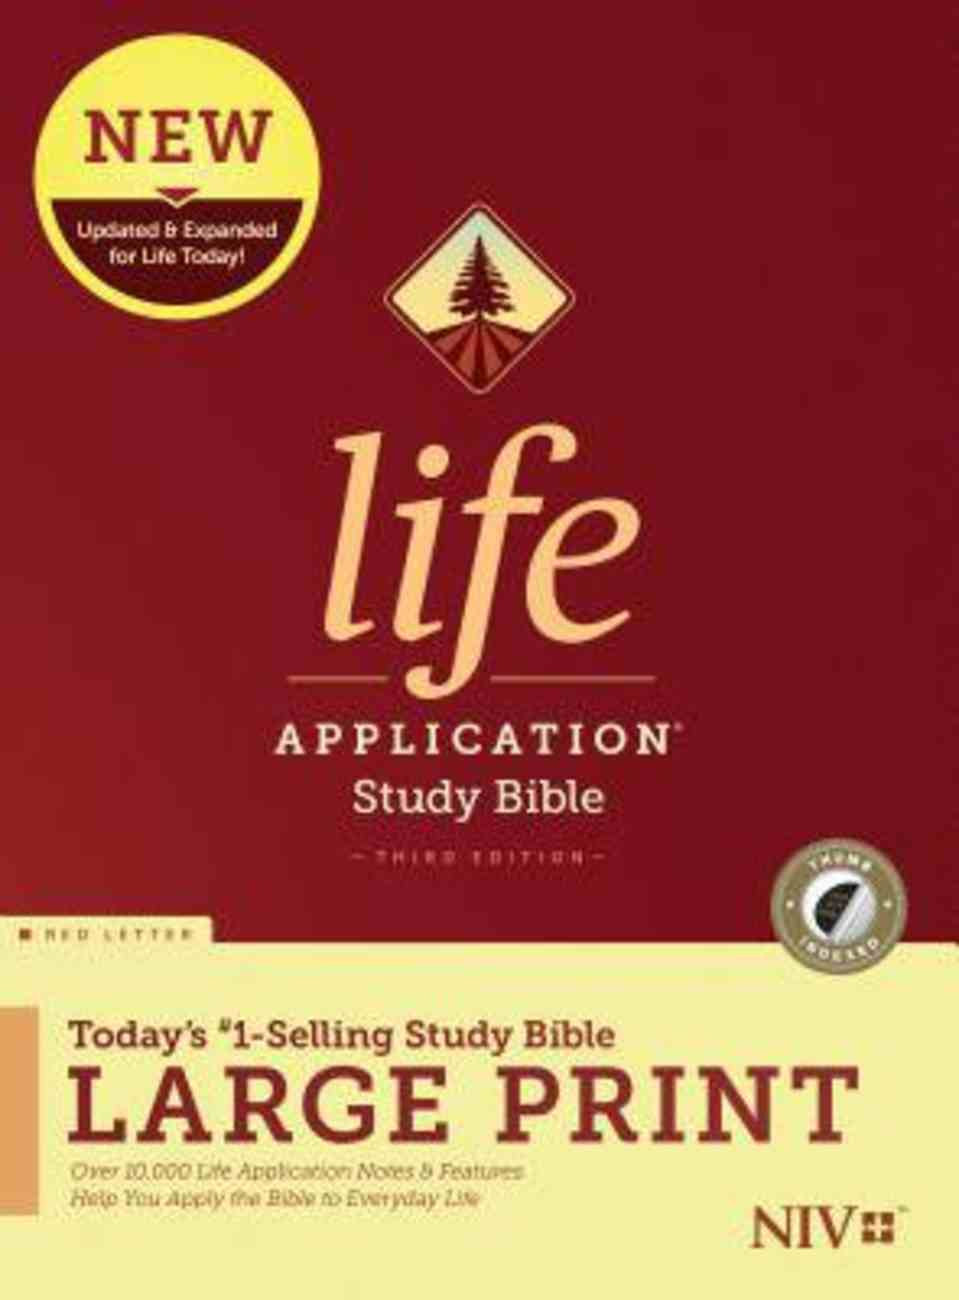 NIV Life Application Study Bible Third Edition Large Print Indexed (Red Letter Edition) Hardback